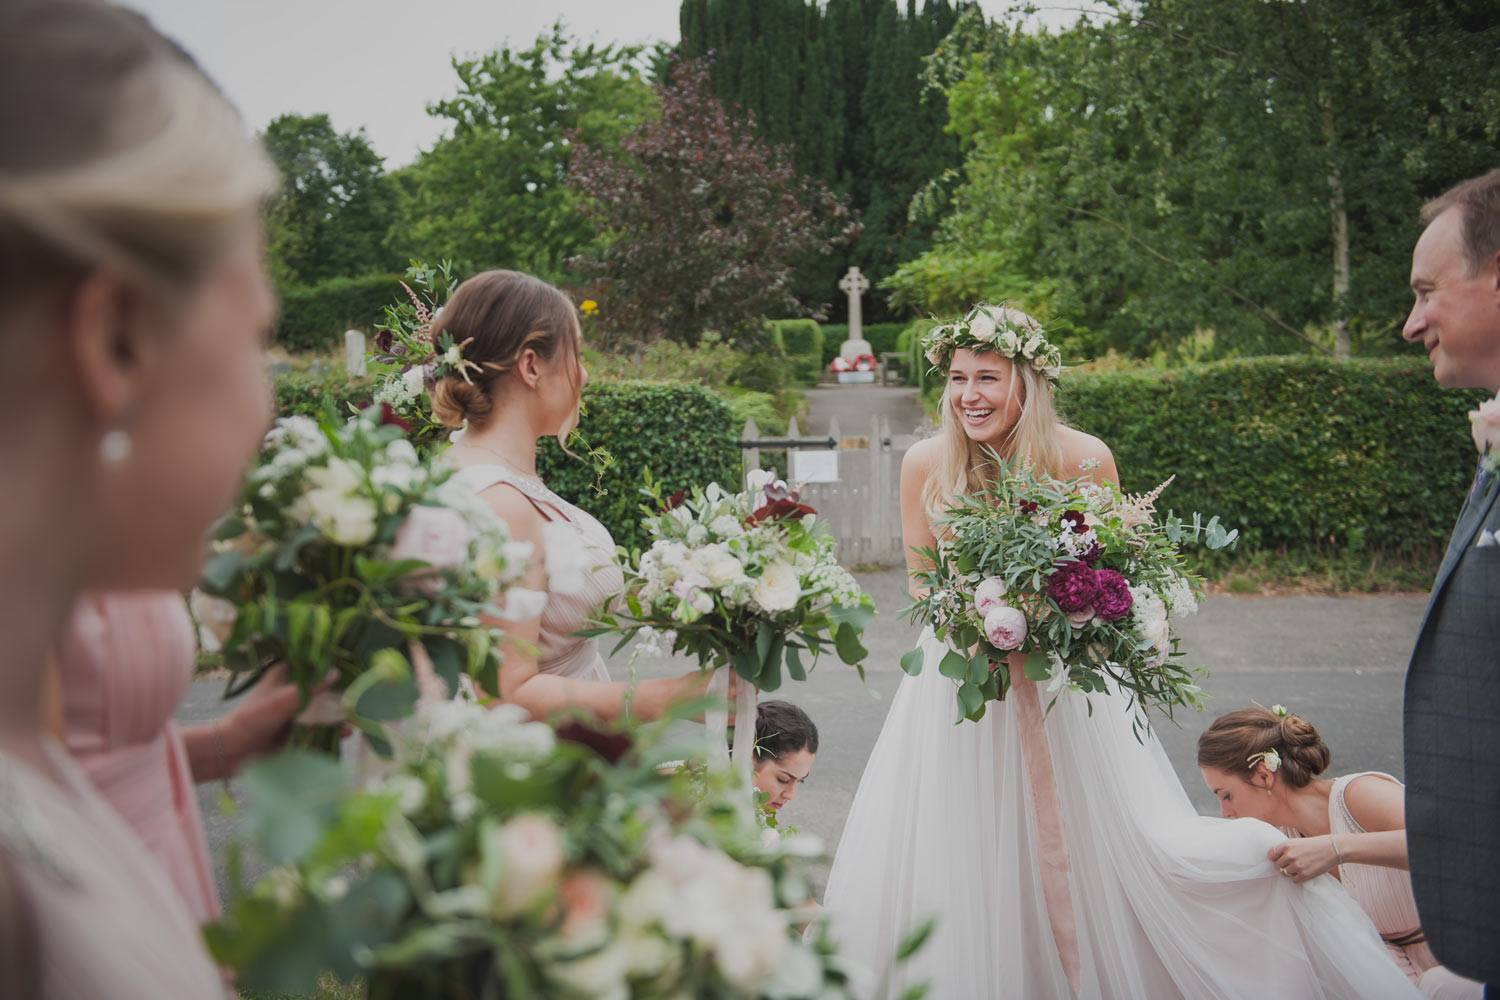 Bride and bridesmaids with garden rose natural bouquet and flower crown